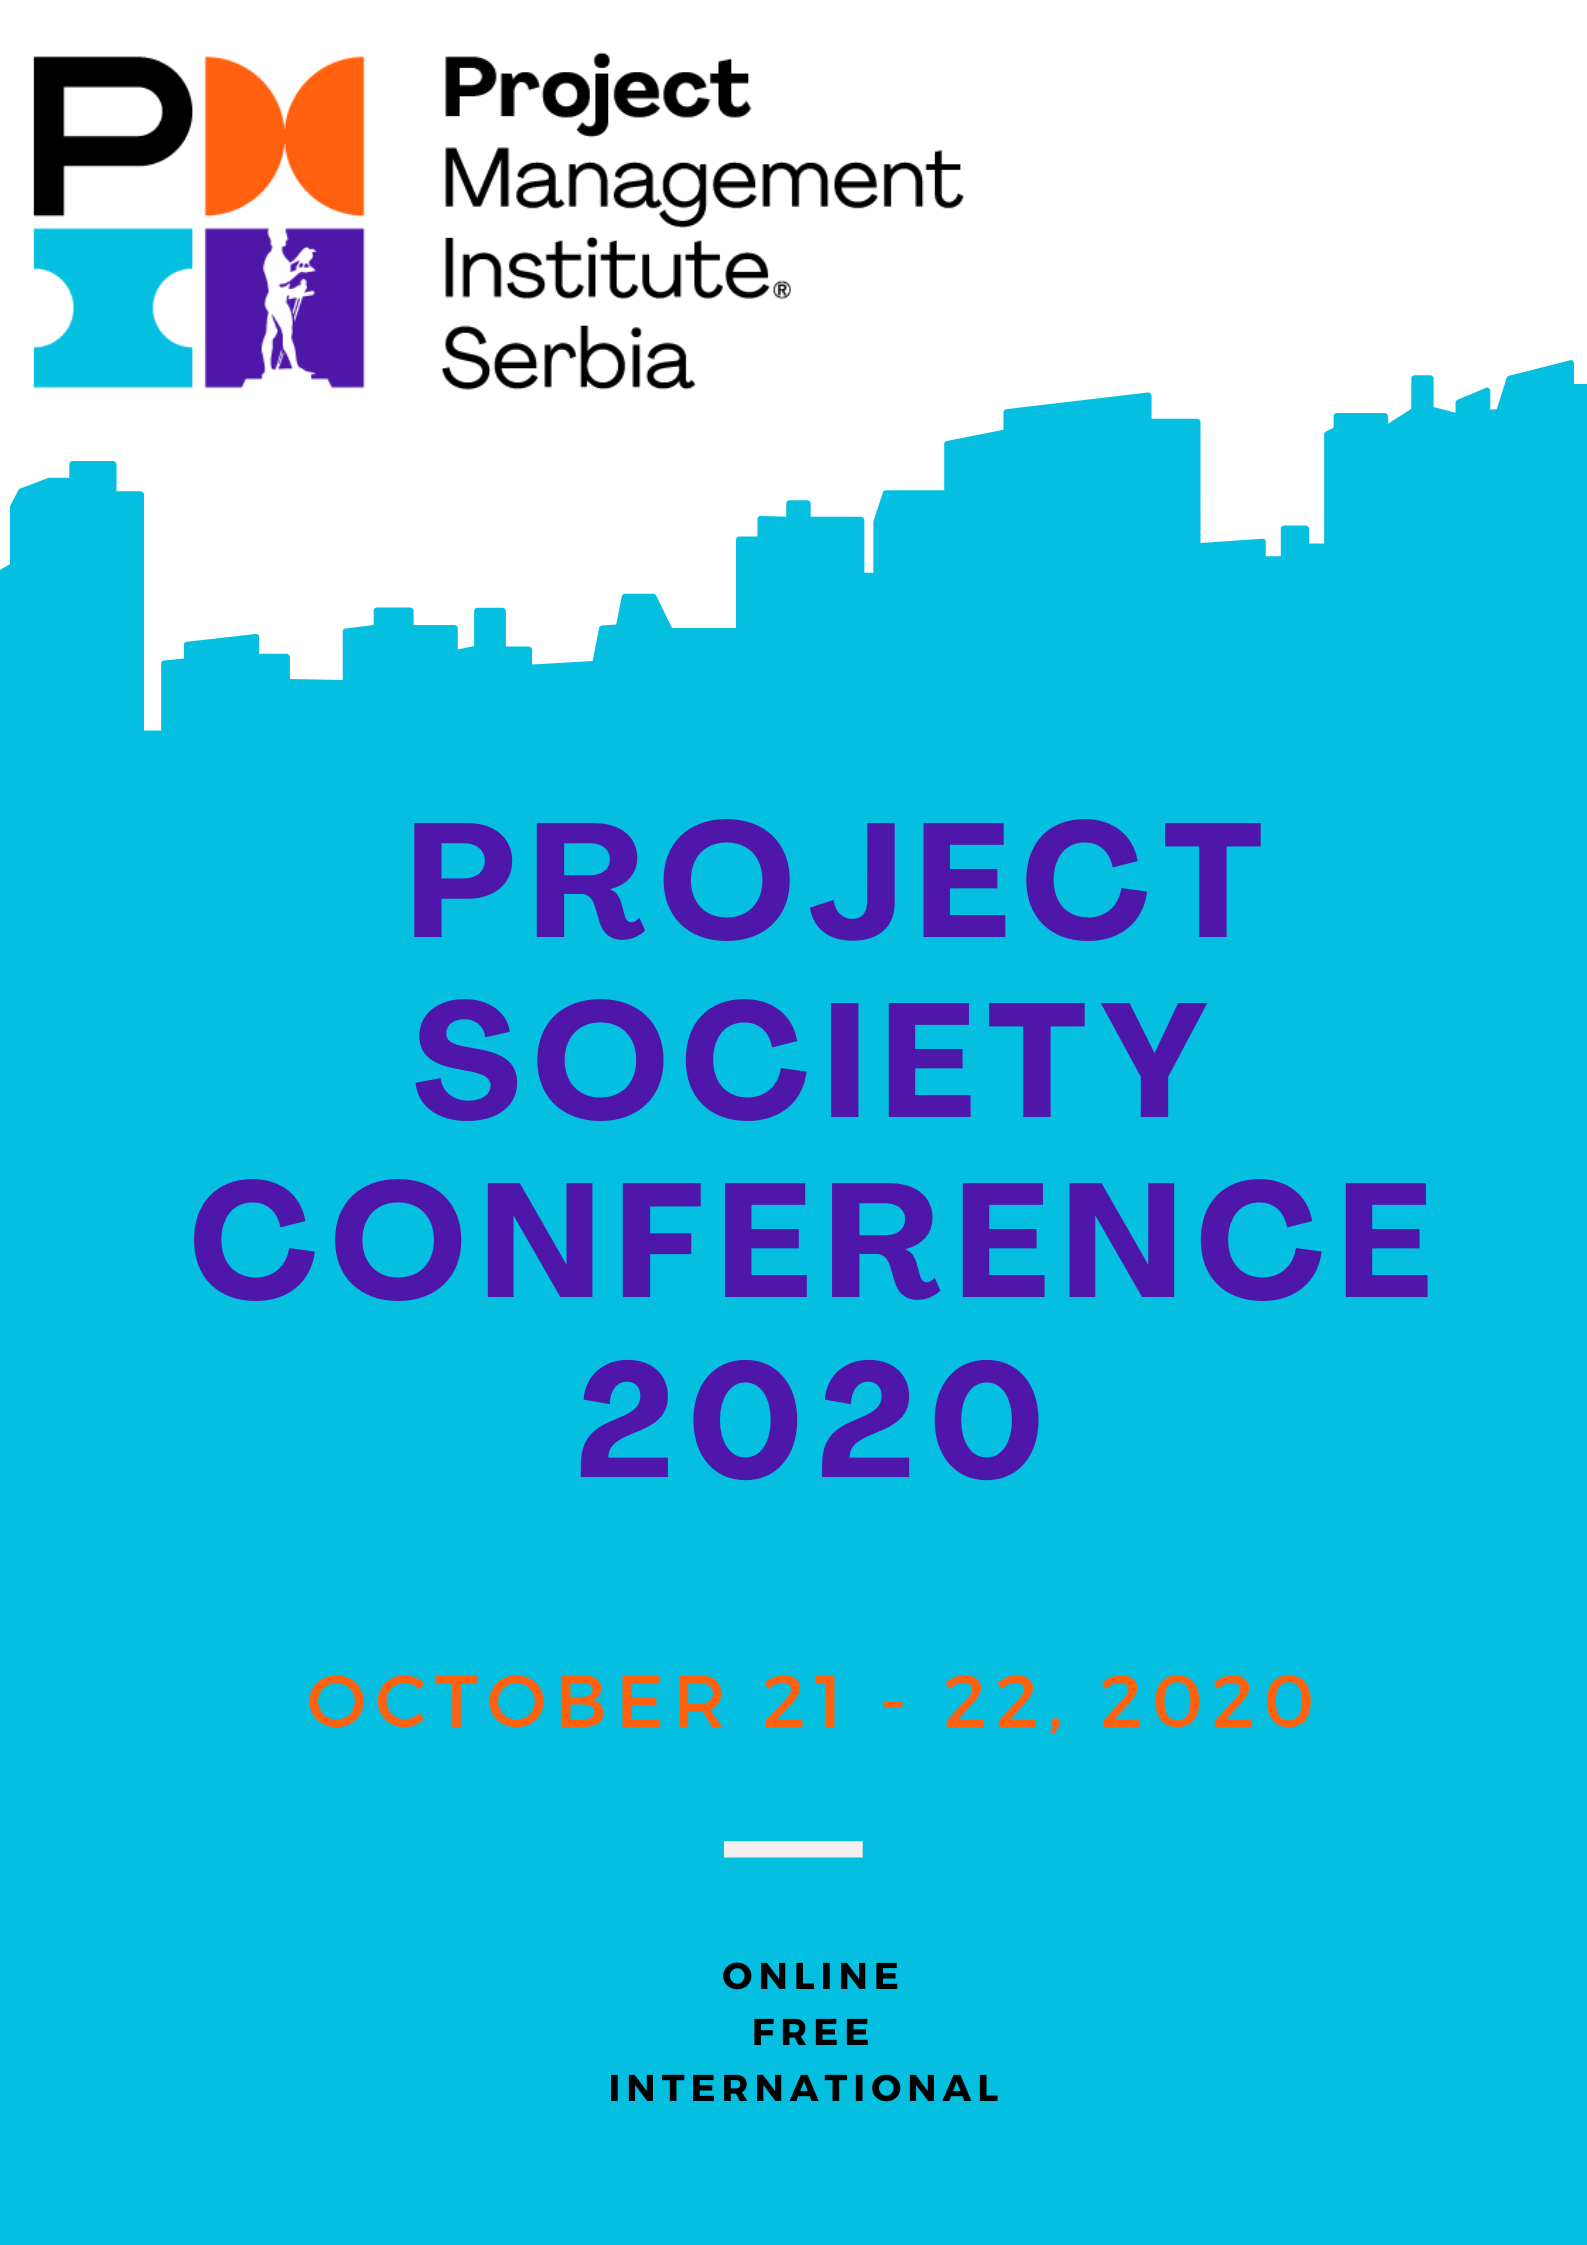 Project Society Conference 2020 – application for presentation closes today!